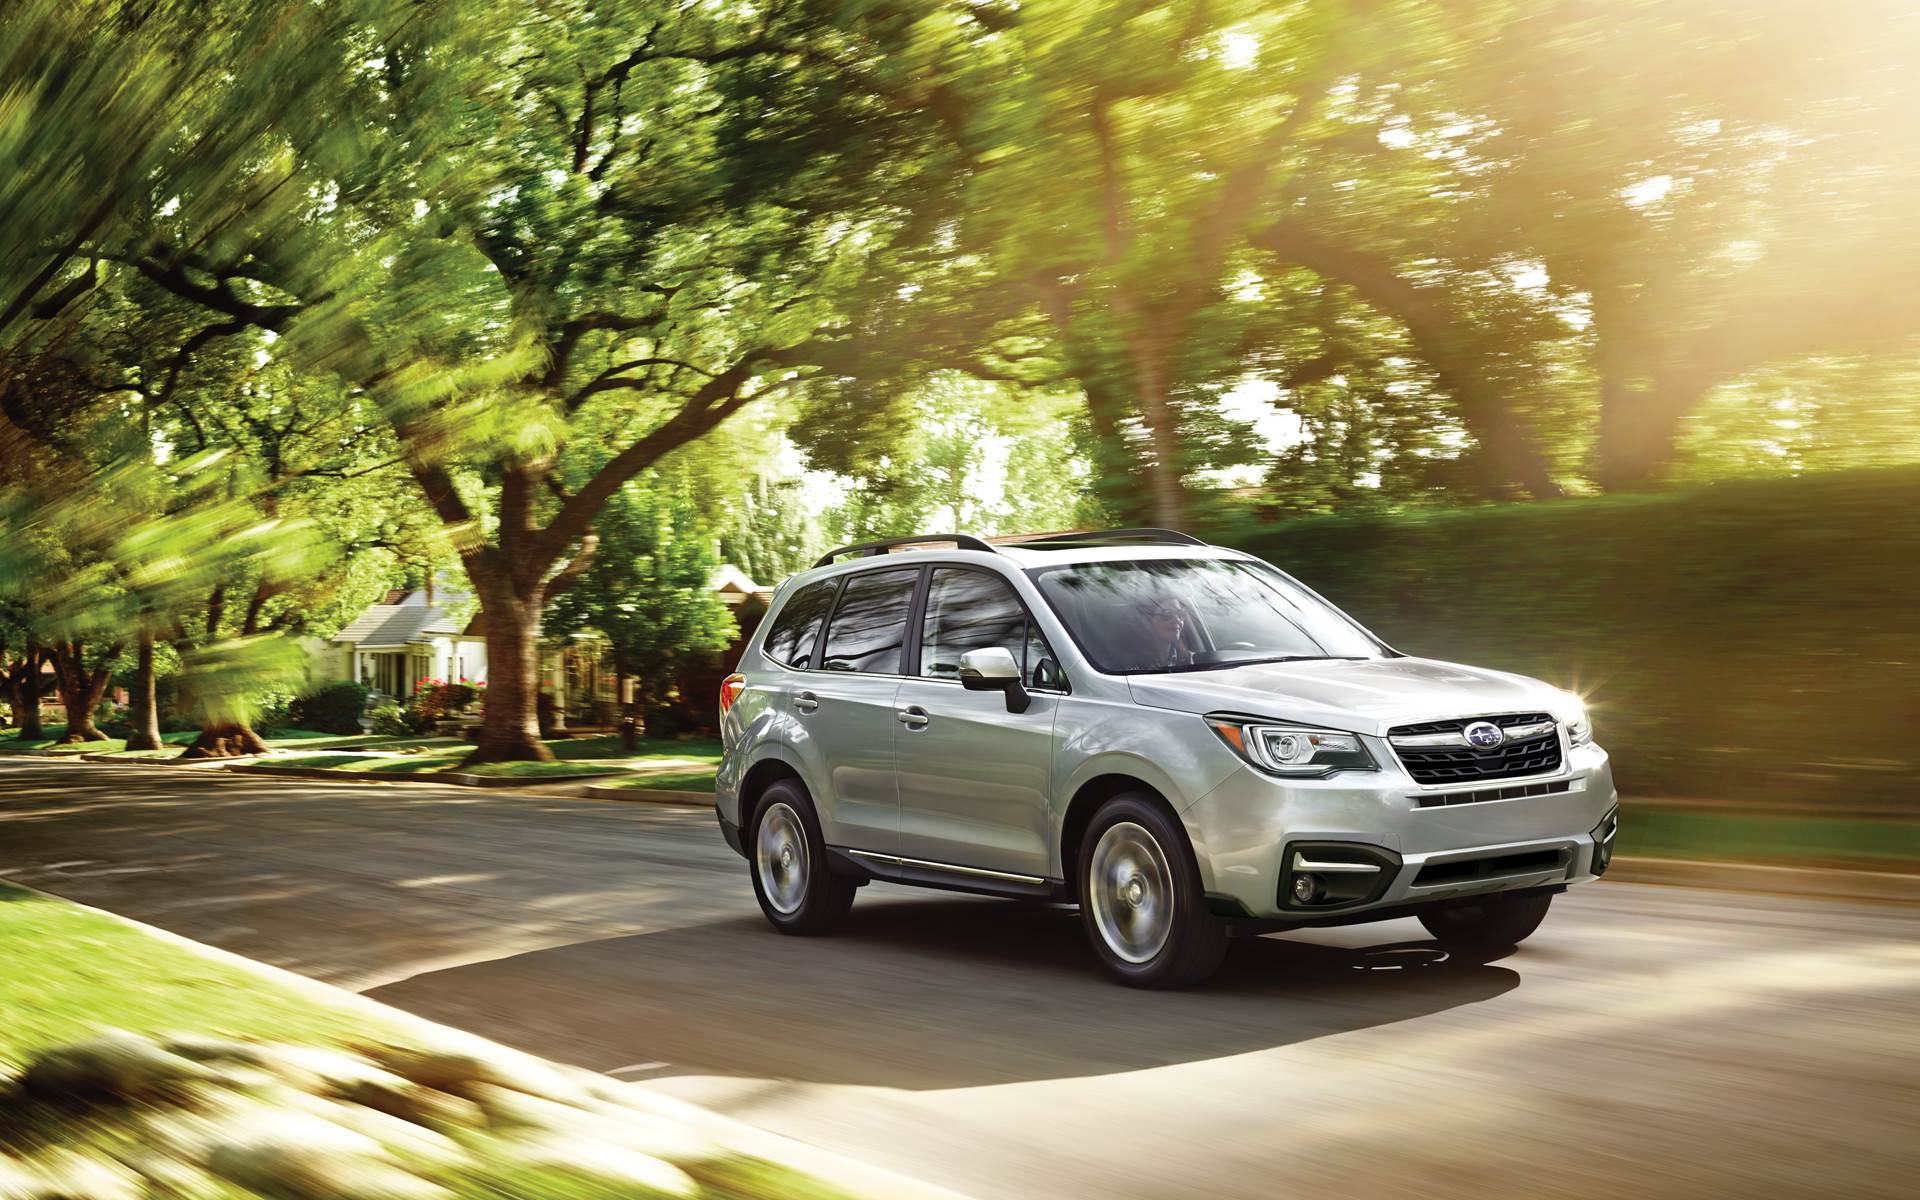 new features in the 2017 Subaru Forester near Orlando